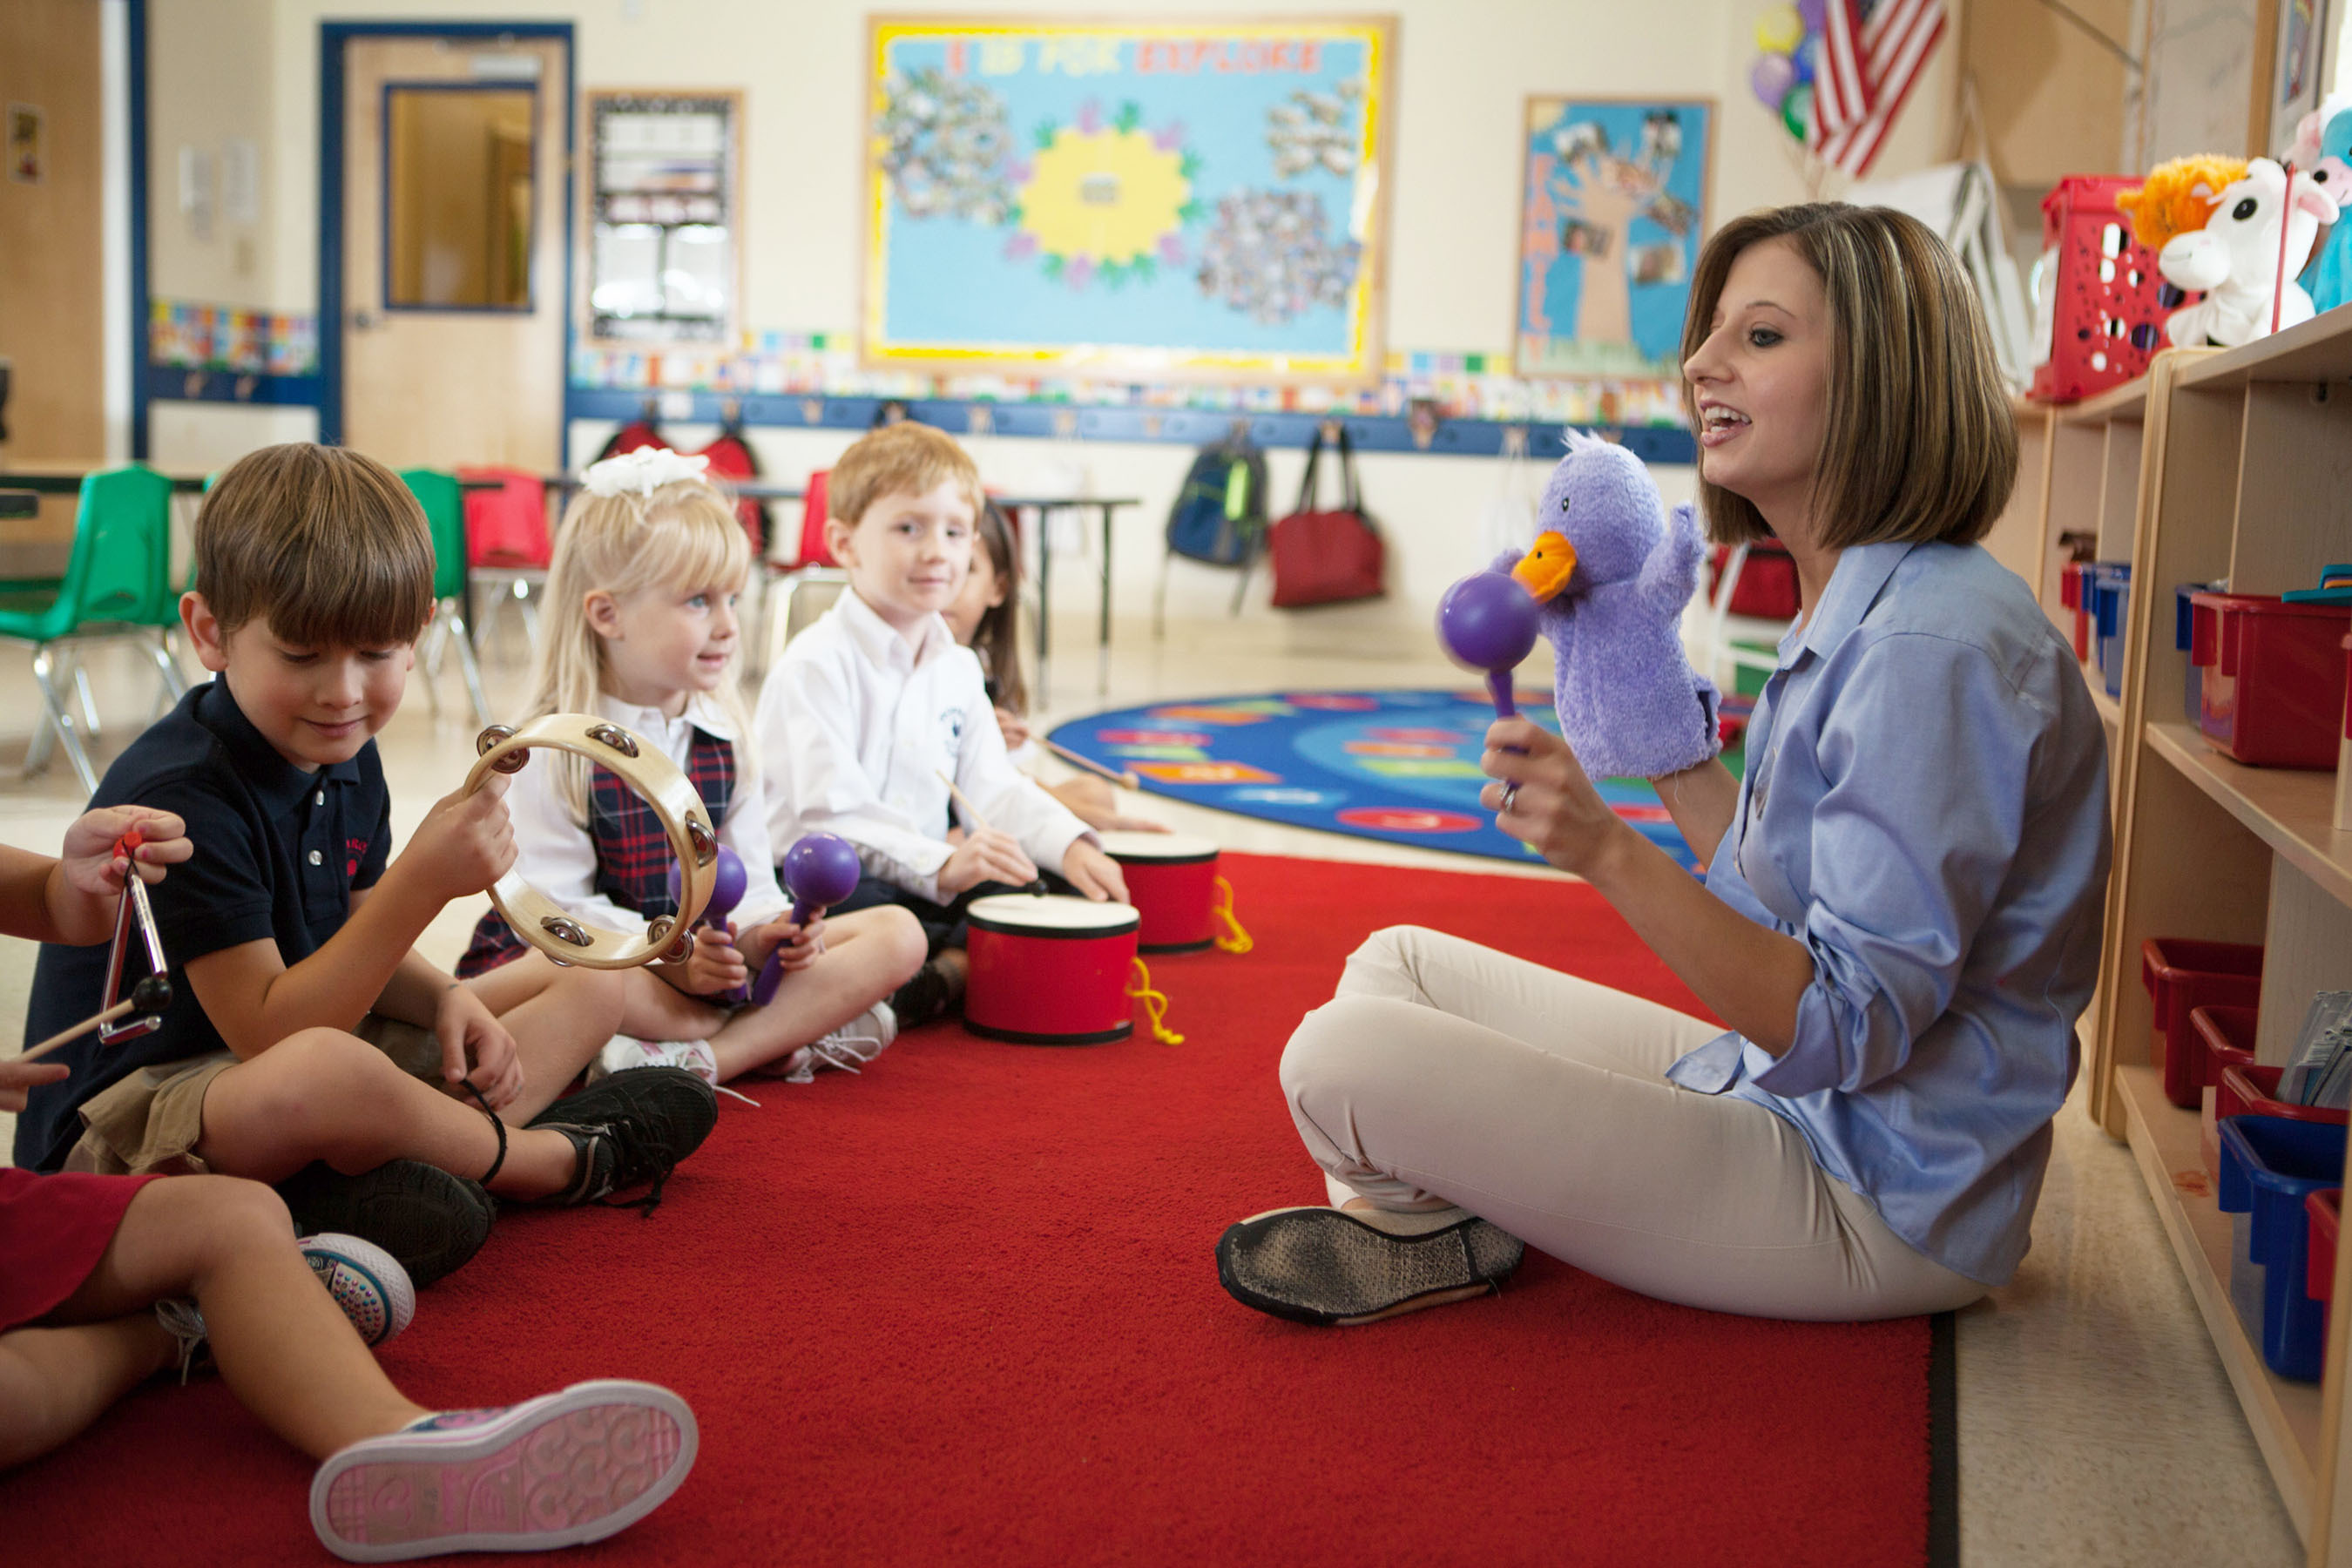 The high cost of care: Child care rates exceed college tuition